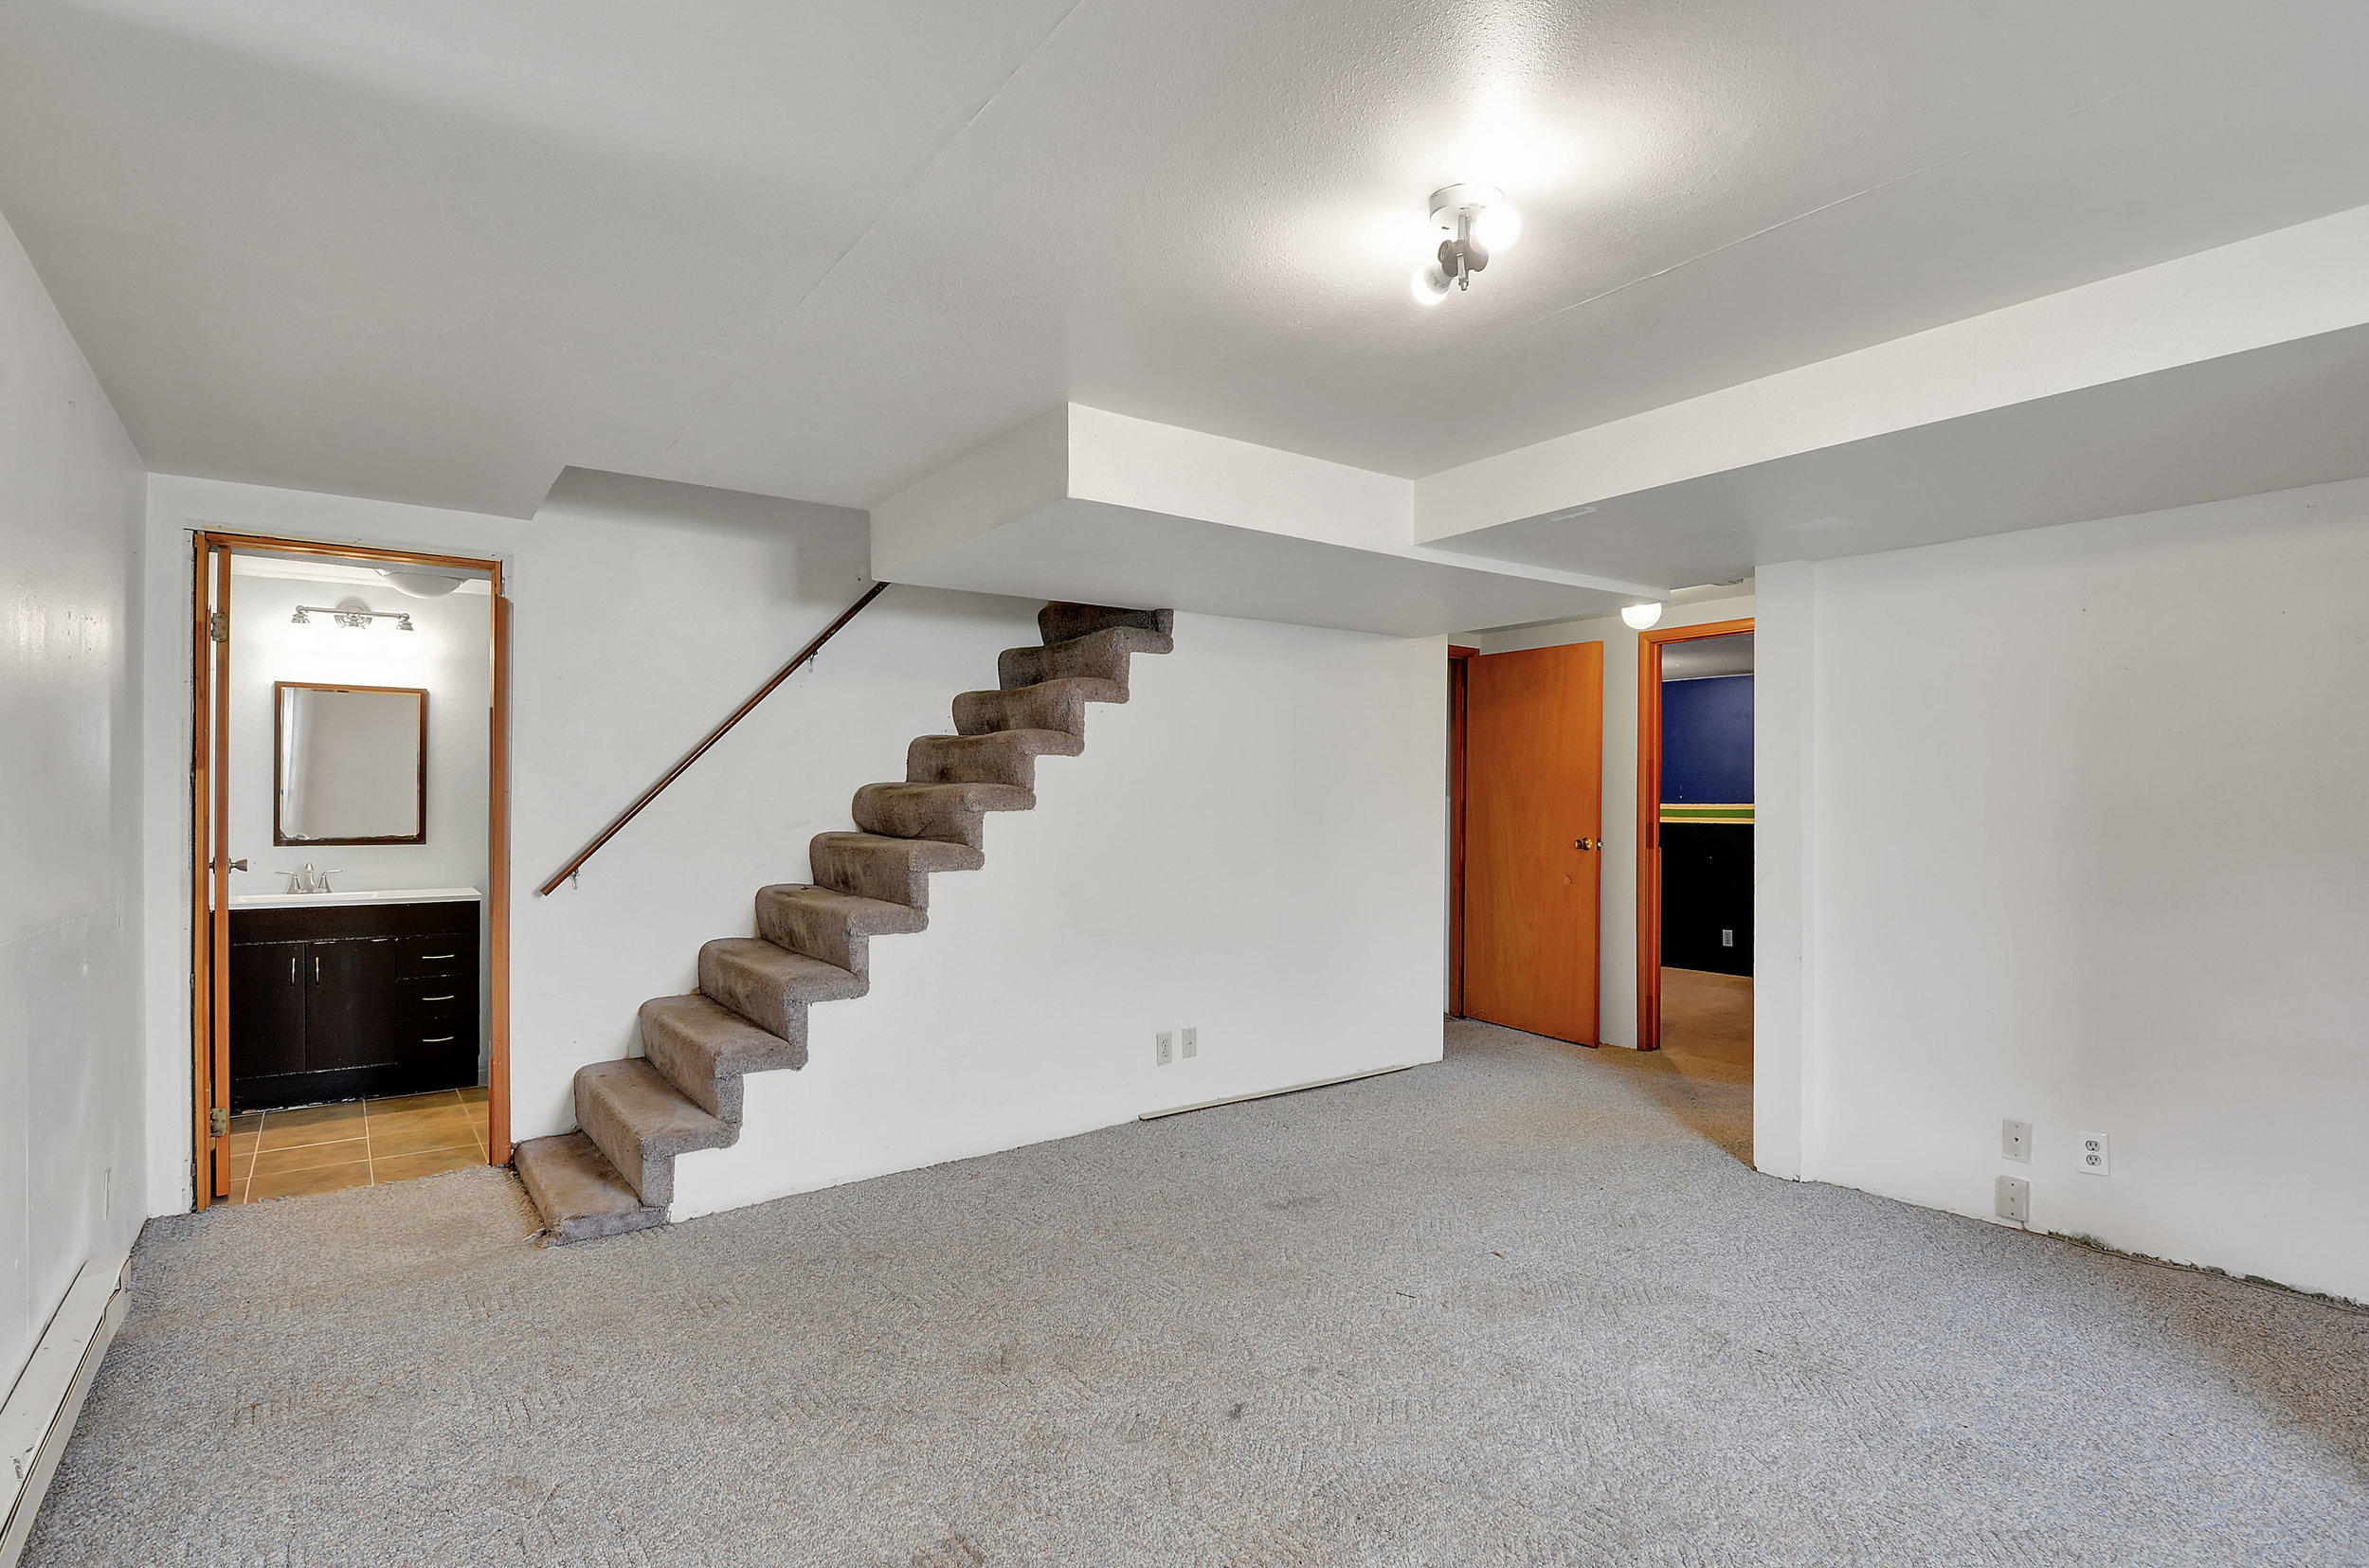 The finished basement with a 3/4 bath at the bottom of the stairs.